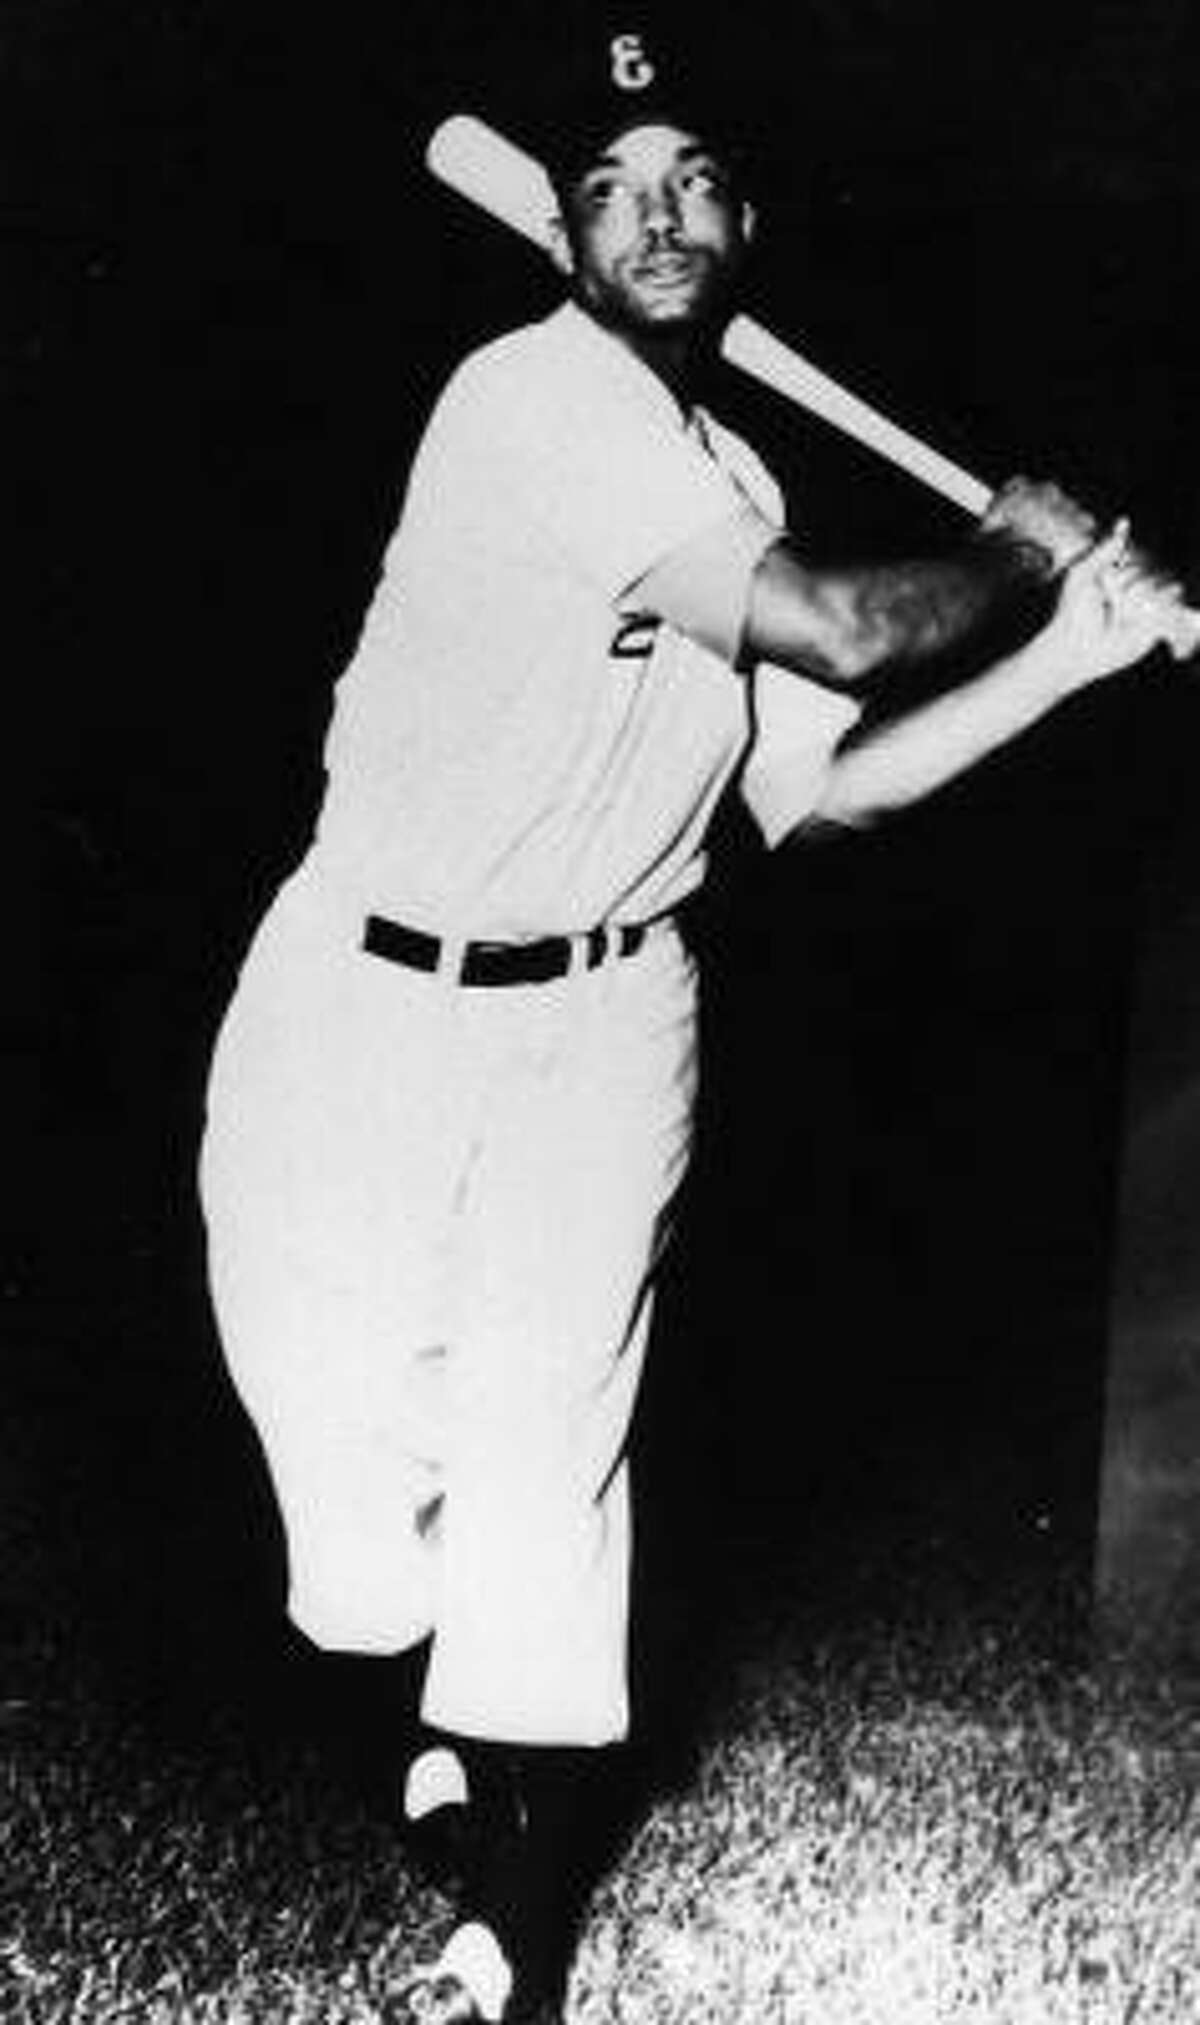 Monte Irvin played shortstop for the Newark Eagles in 1946, when they won the Negro Leagues championship.